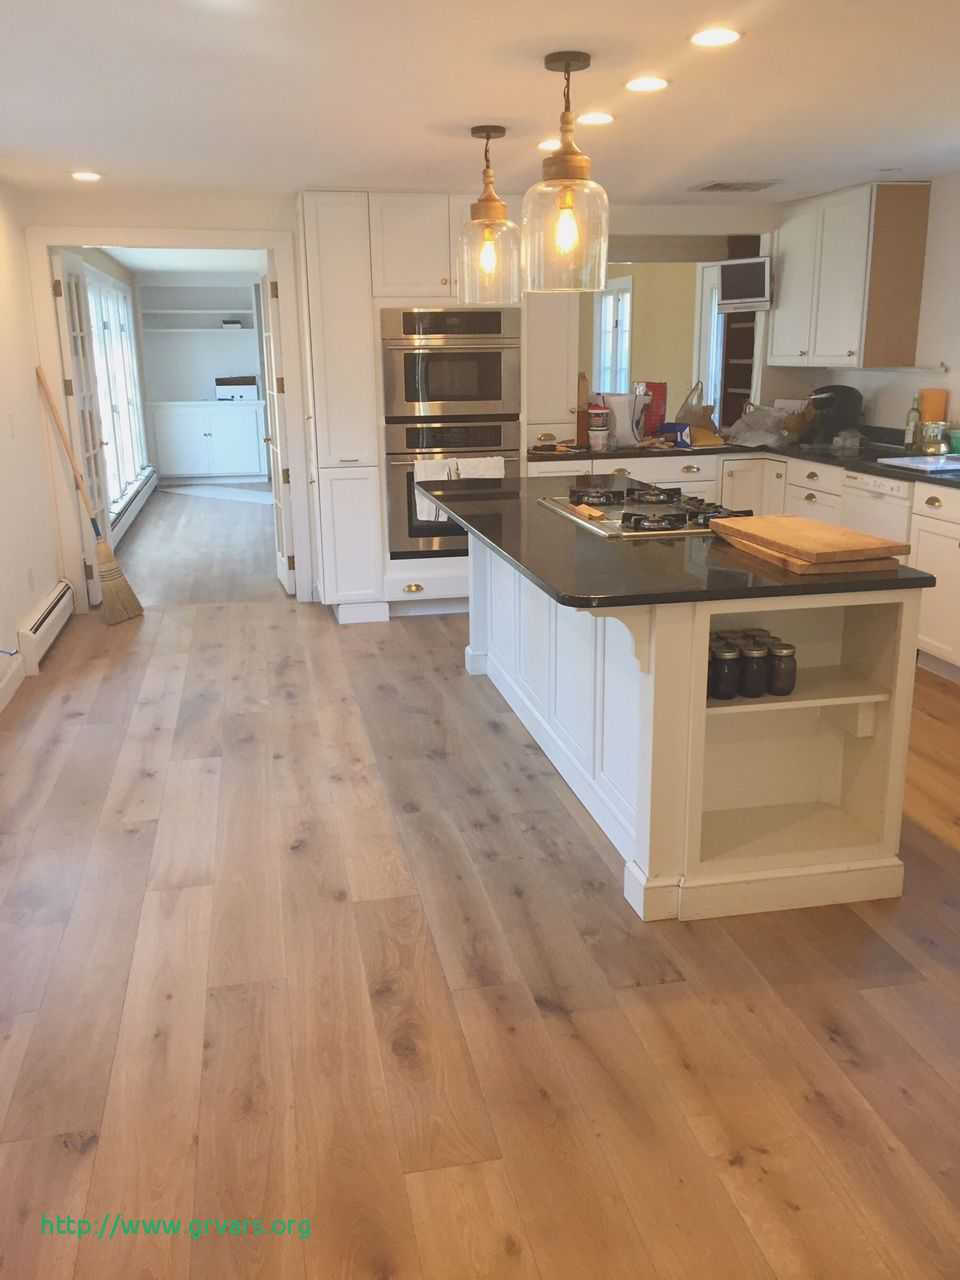 clearance solid hardwood flooring of solid wood floor polish inspirant engaging discount hardwood with 0d solid wood floor polish inspirant the search for the perfect engineered oak wide plank hardwoods for